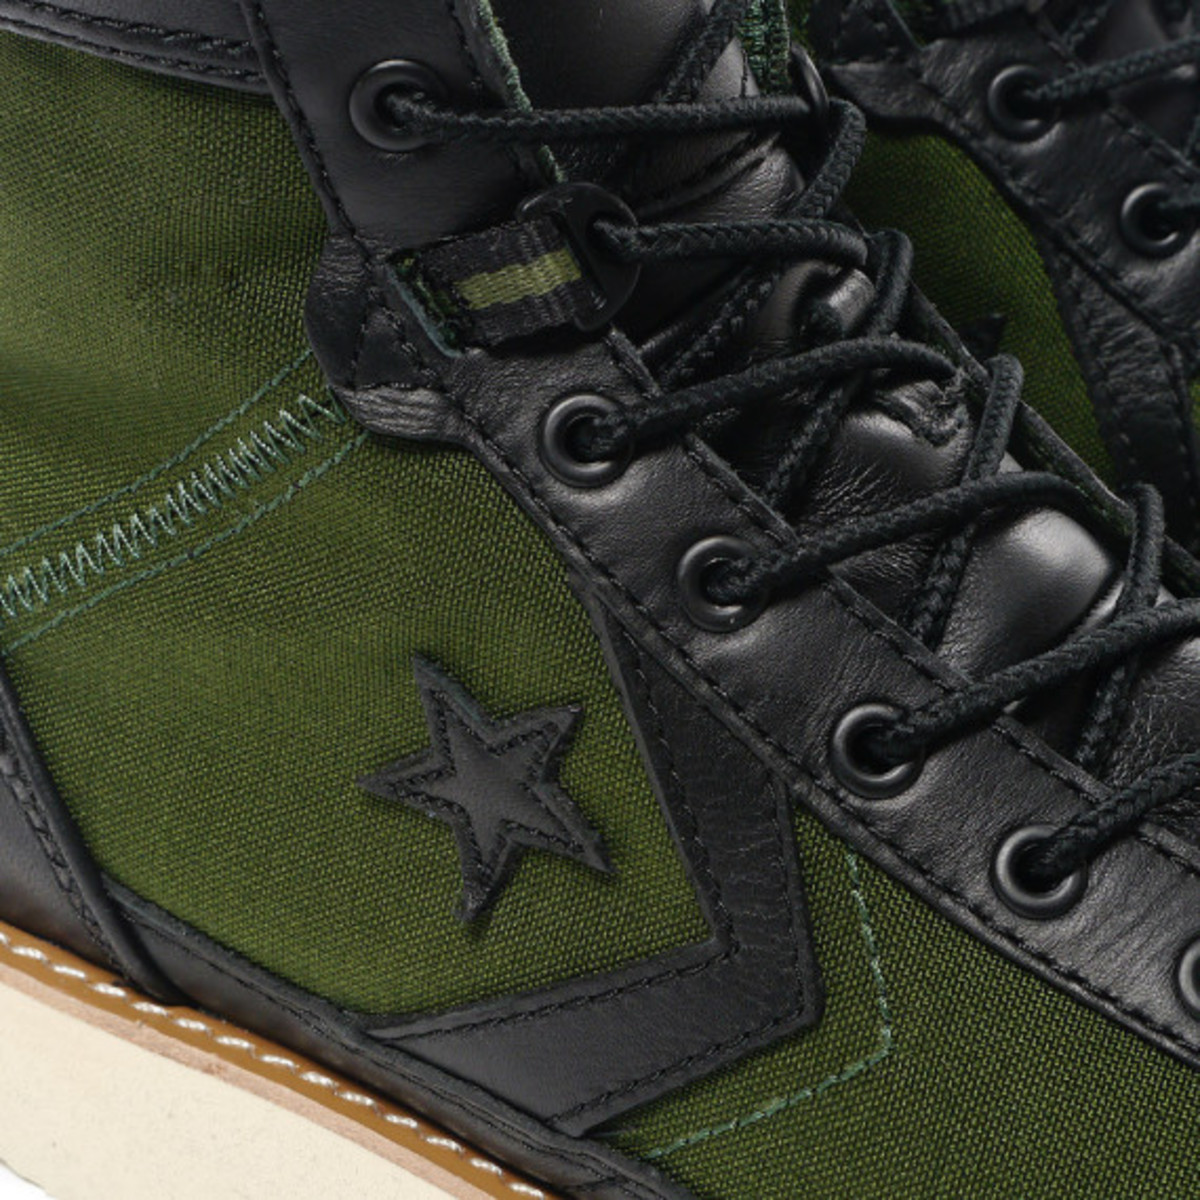 UNDEFEATED x CONVERSE Pro Field Hi | Available Now - 4